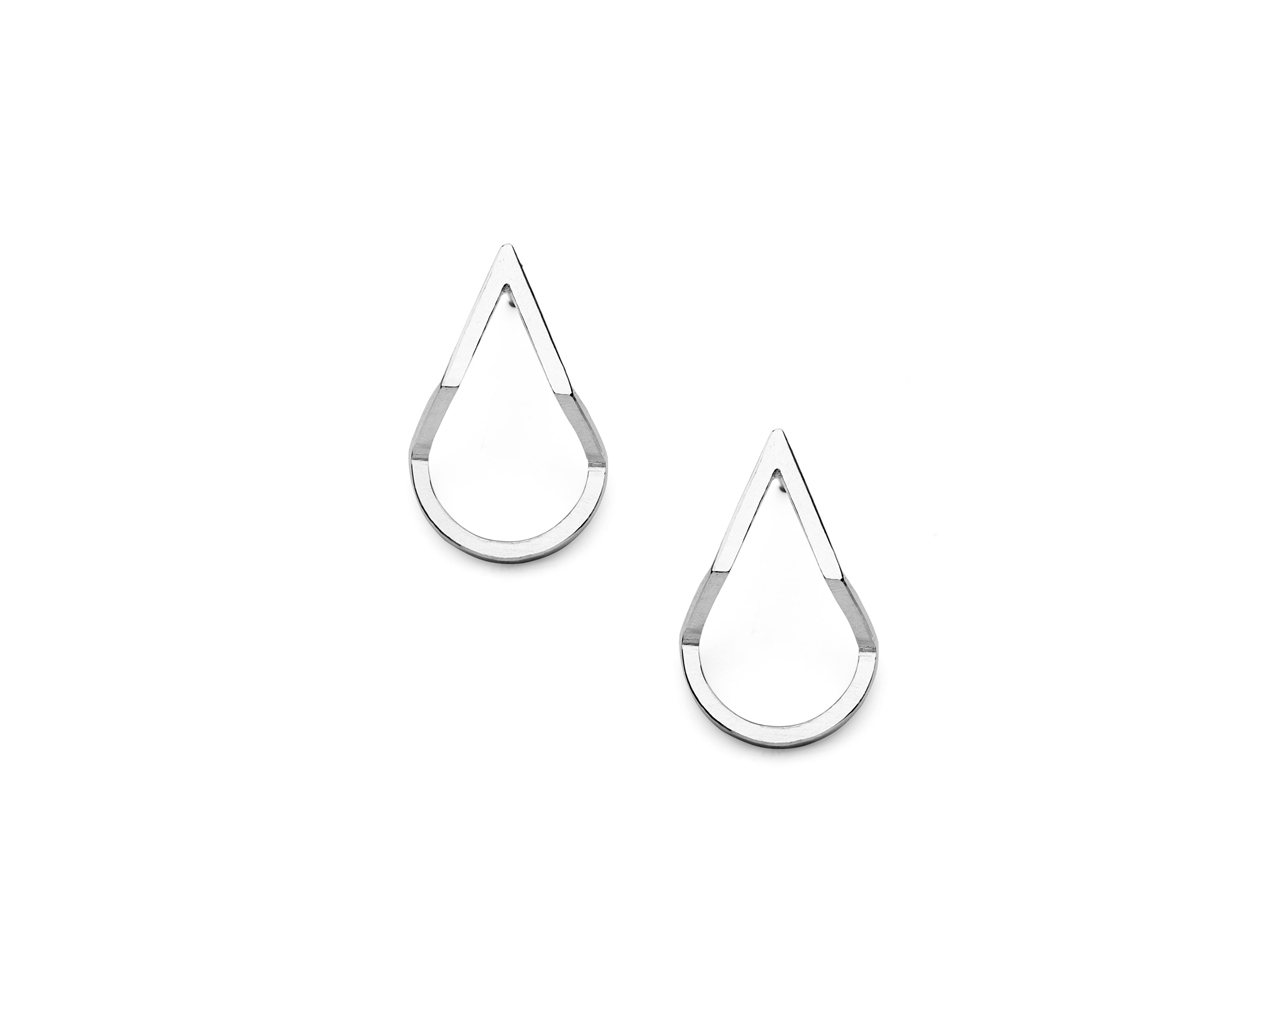 Teardrop earrings in silver by Heather Woof Jewellery.jpg